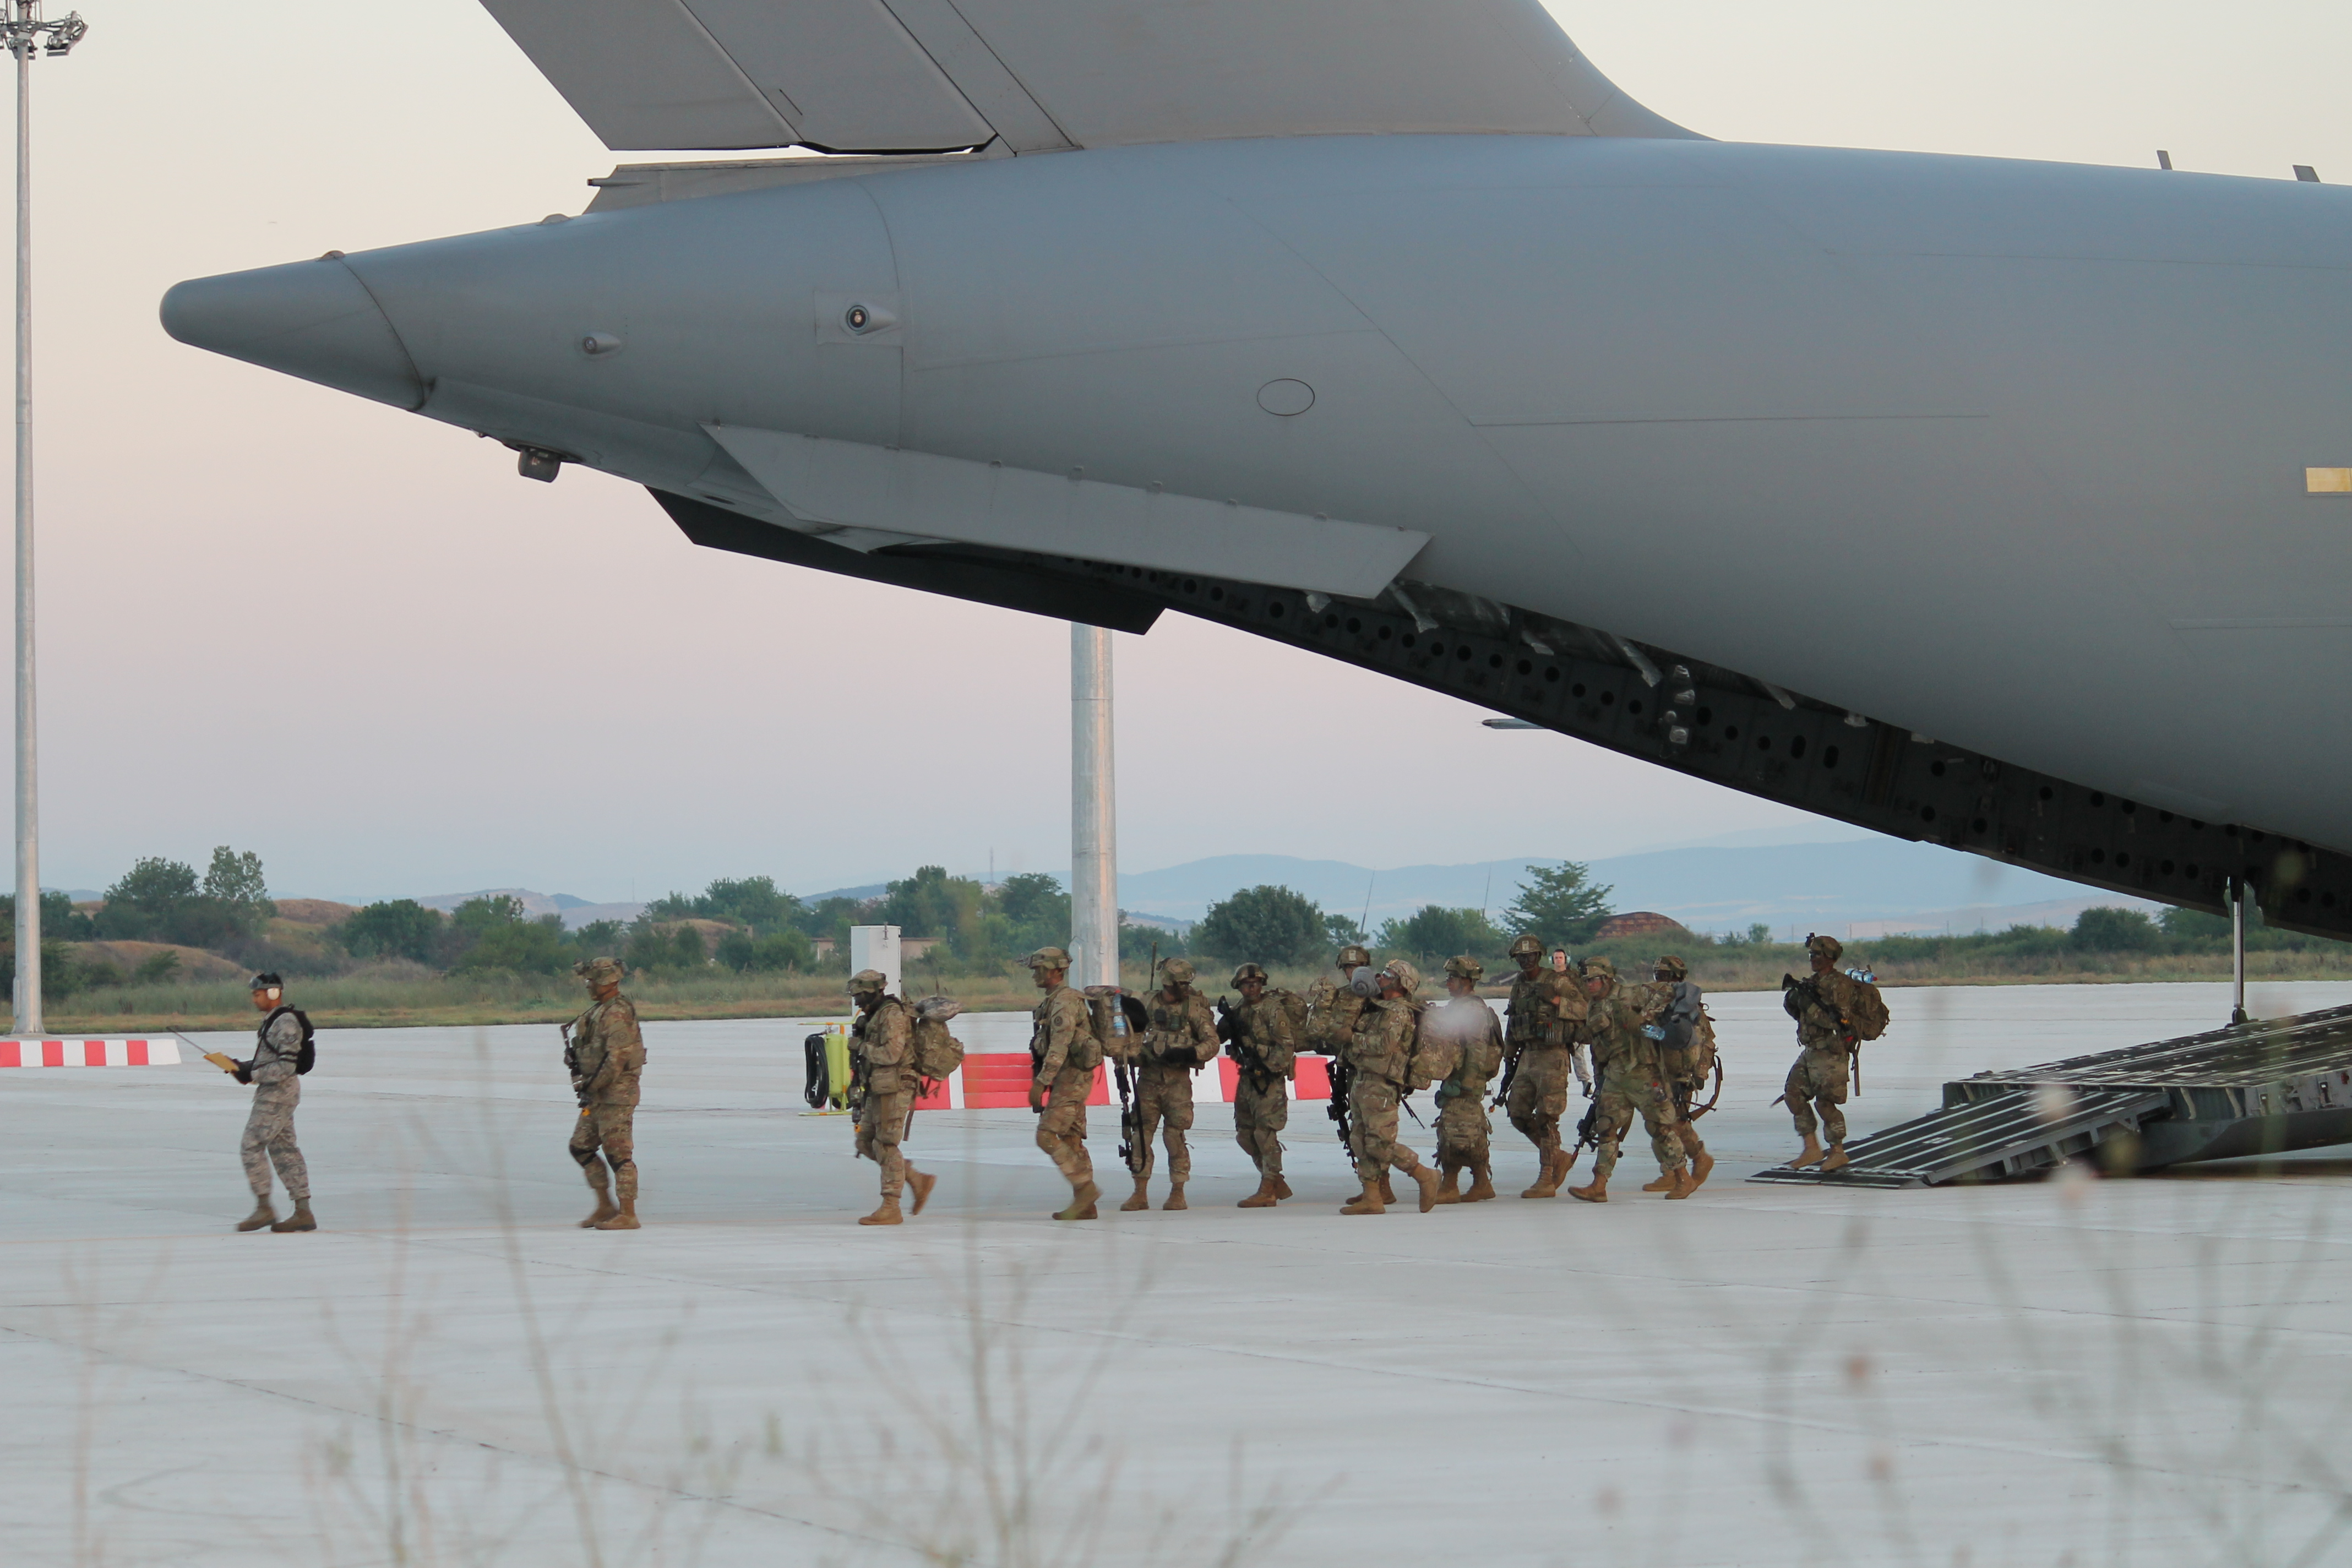 The Stryker unit exits the C-17 first, before the vehicles. (Jen Judson/Staff)